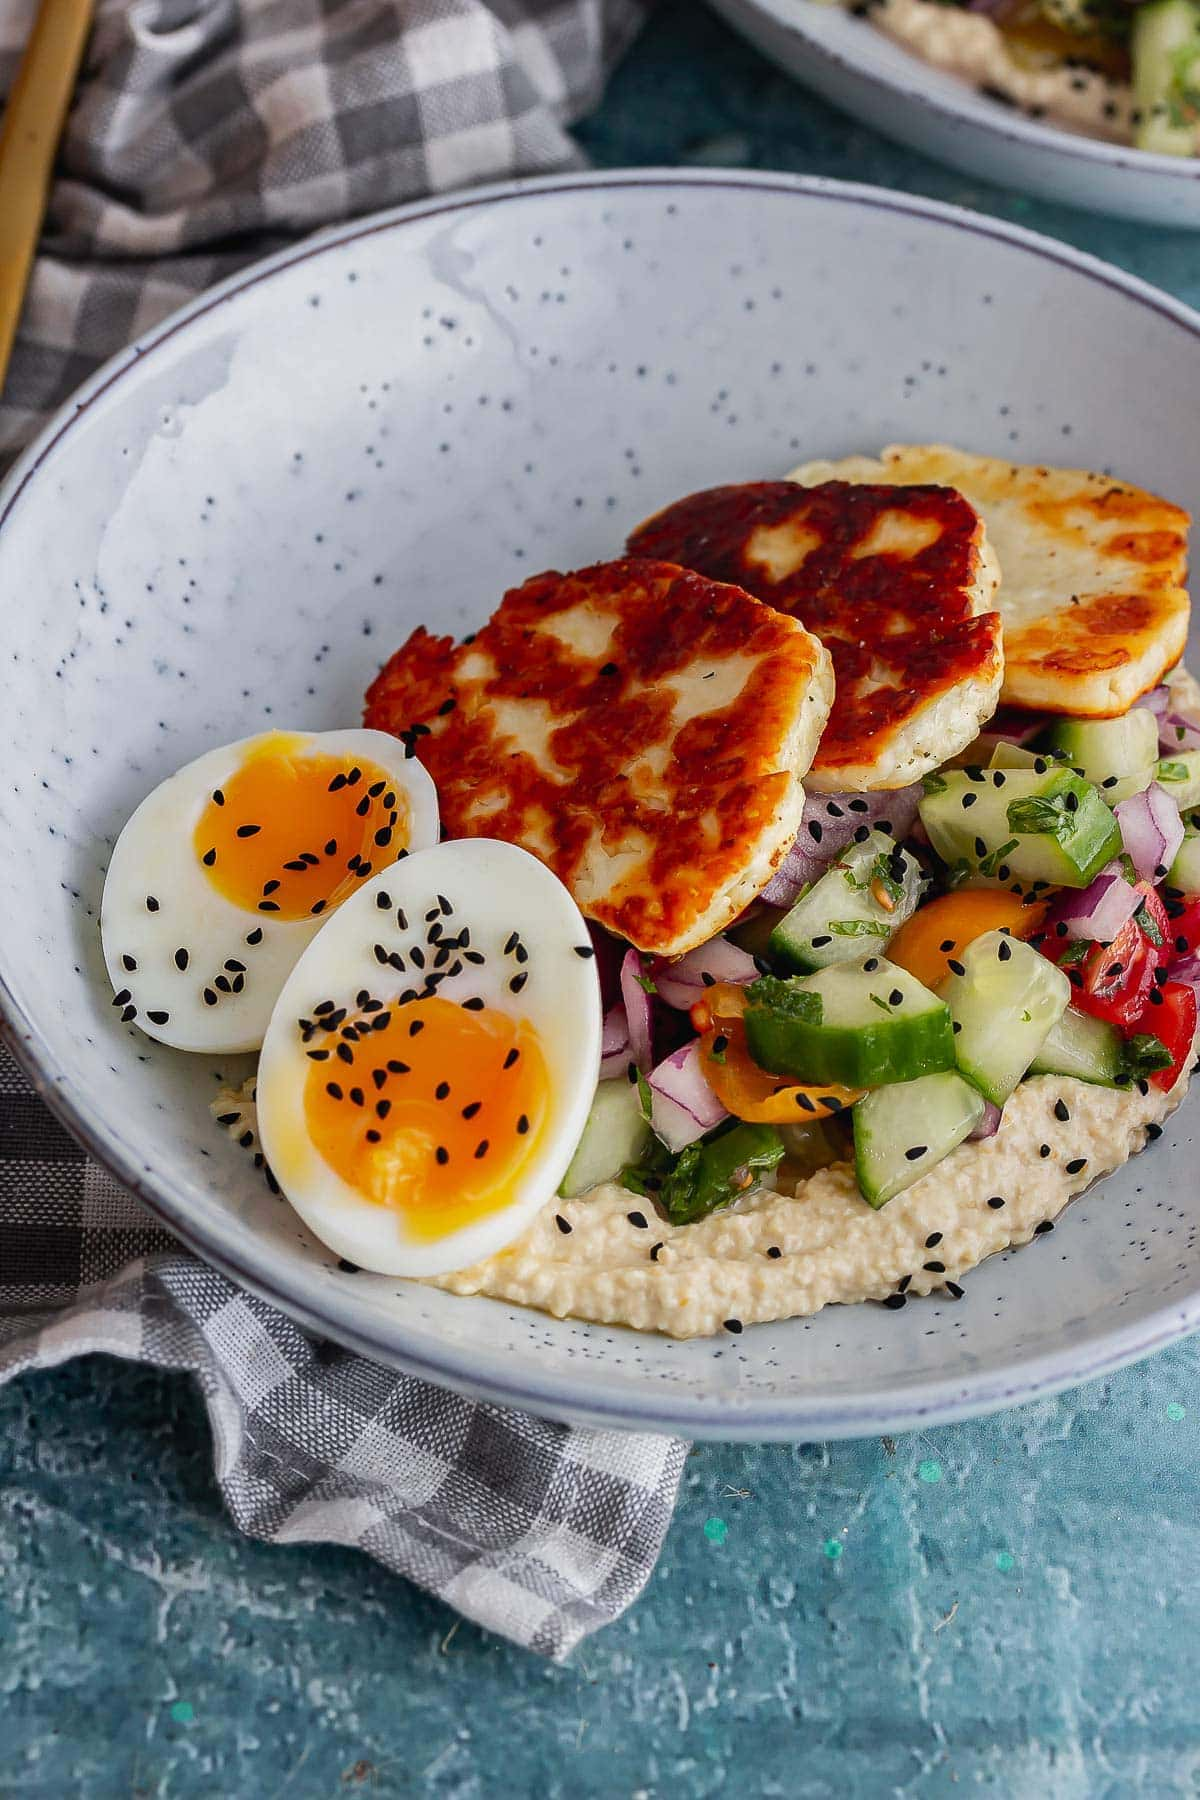 Close up of a runny boiled egg and halloumi in a blue bowl